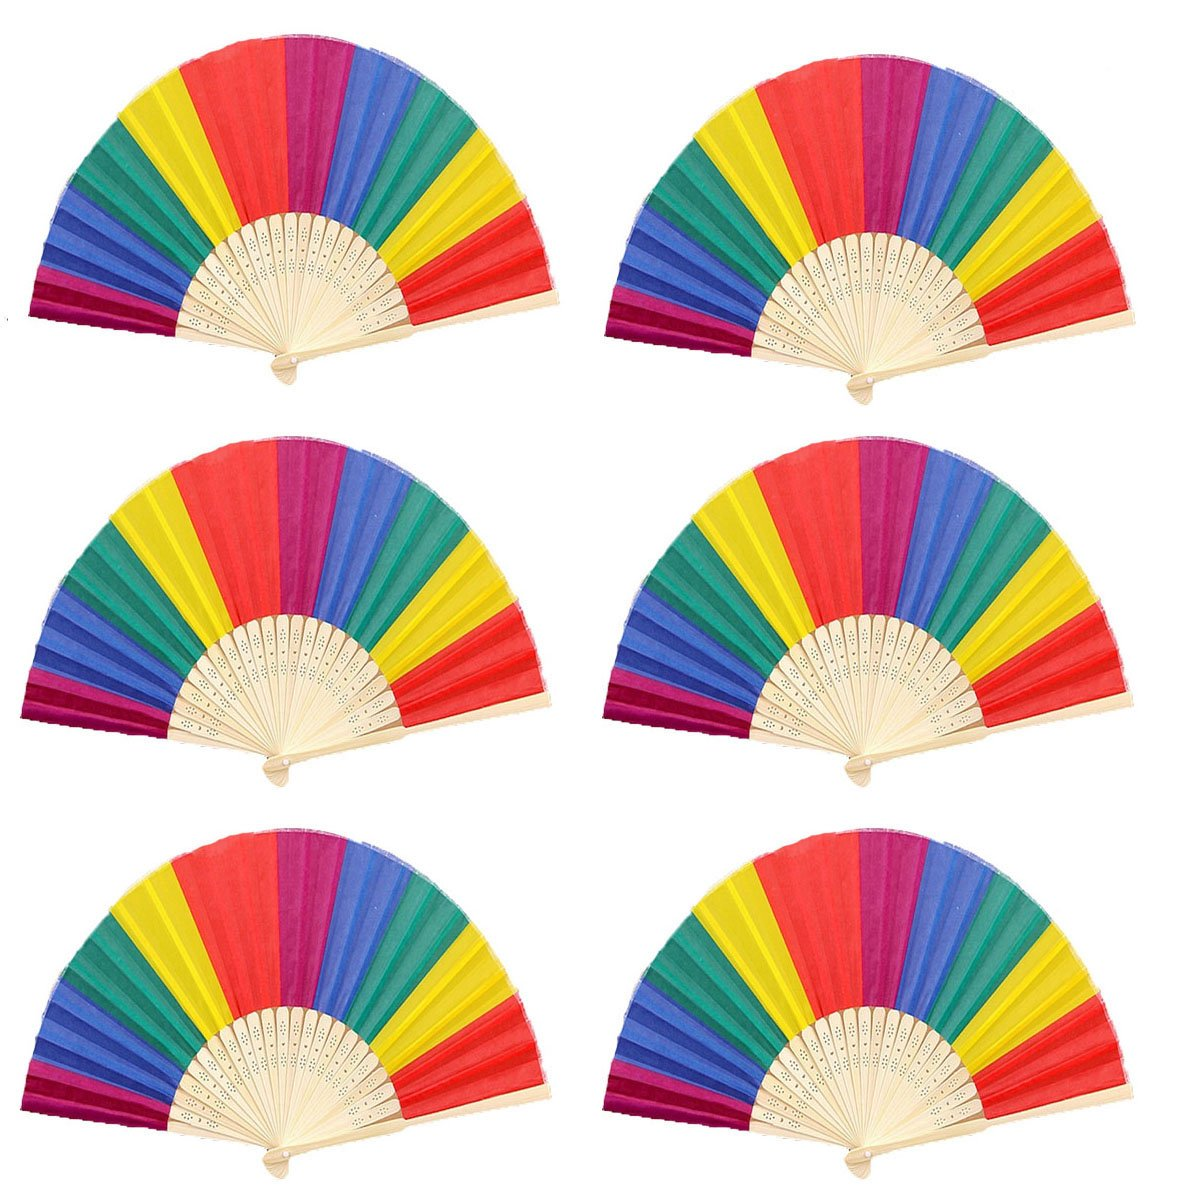 Winture 10 PCS Peacock Hand Fans, Spanish Folding Hand Fan, Flower Dancing Fans,Summer Handheld Folding Fans Party Favors for Girls Women (Embroidered Peacock Tail Pattern, 10 Assorted Colors)